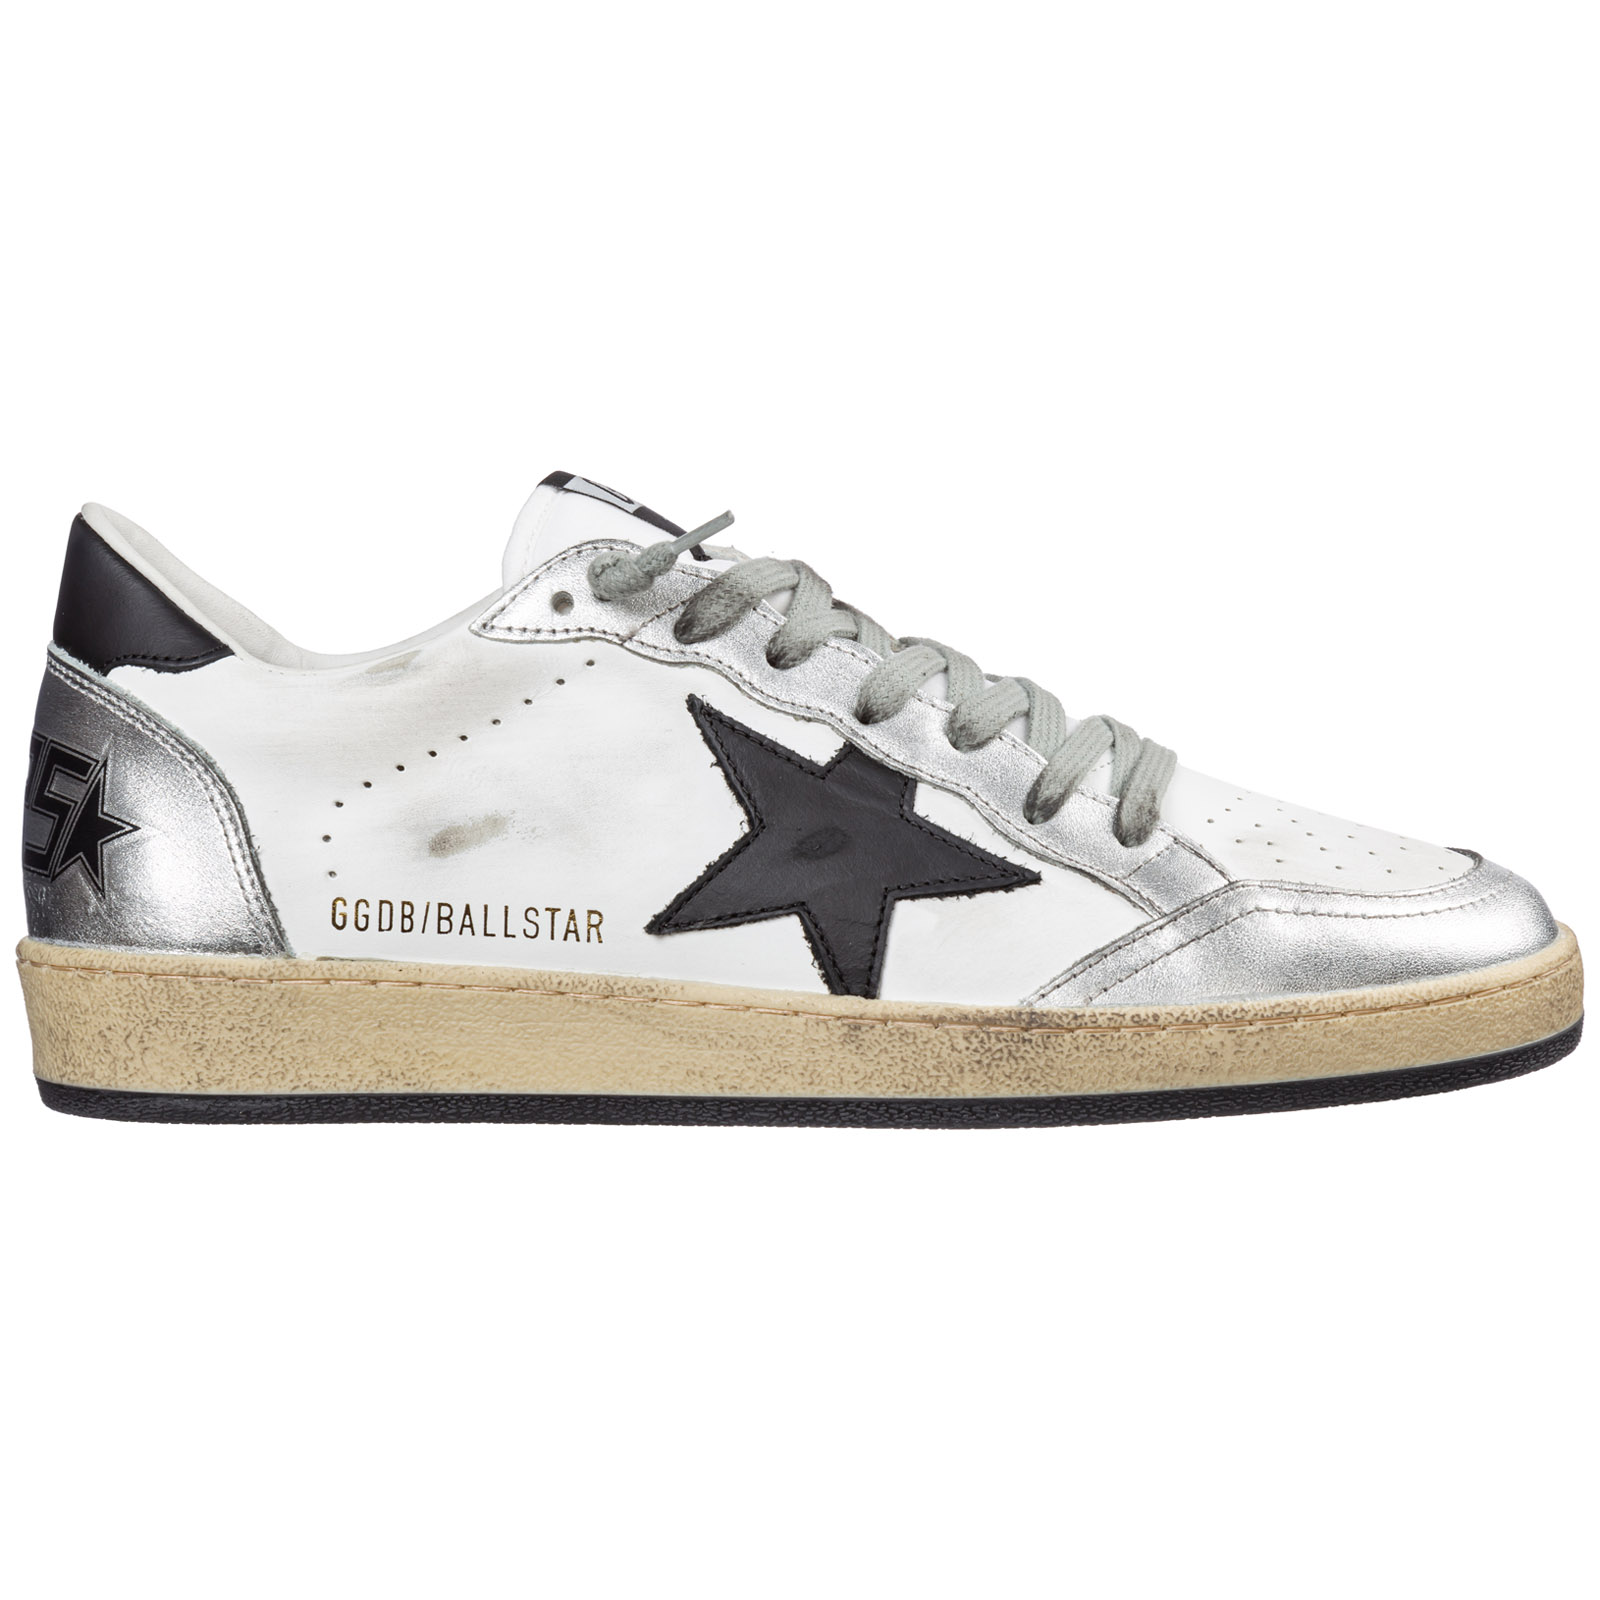 Golden Goose Sneakers MEN'S SHOES LEATHER TRAINERS SNEAKERS BALL STAR